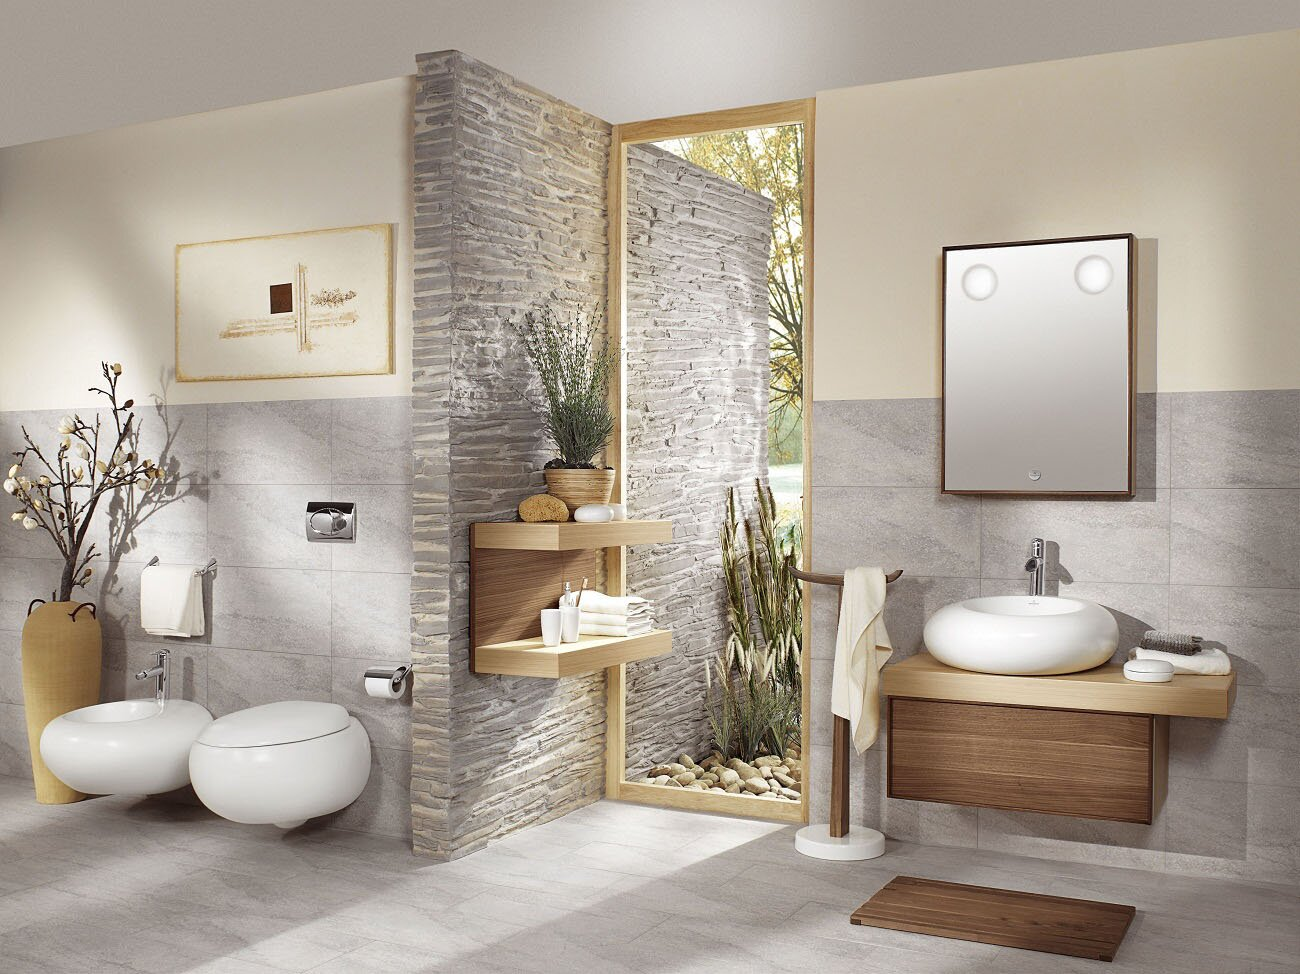 Baños Design The 18 Best Bathroom Decor Examples Of All Time